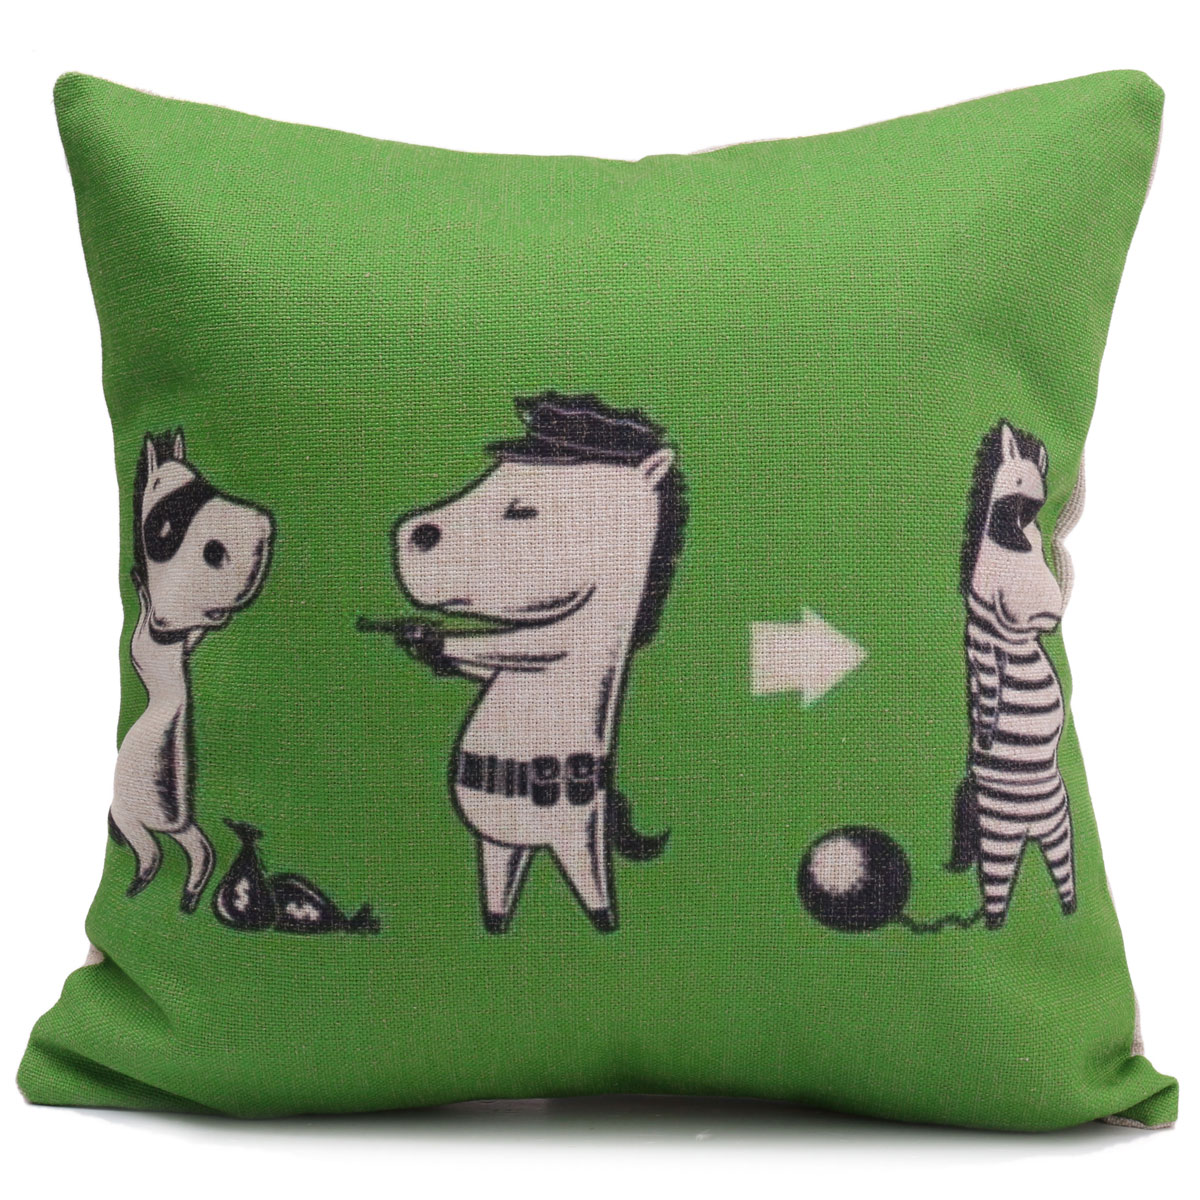 chein chat animal housse de coussin canap taie d 39 oreiller maison cushion cover ebay. Black Bedroom Furniture Sets. Home Design Ideas